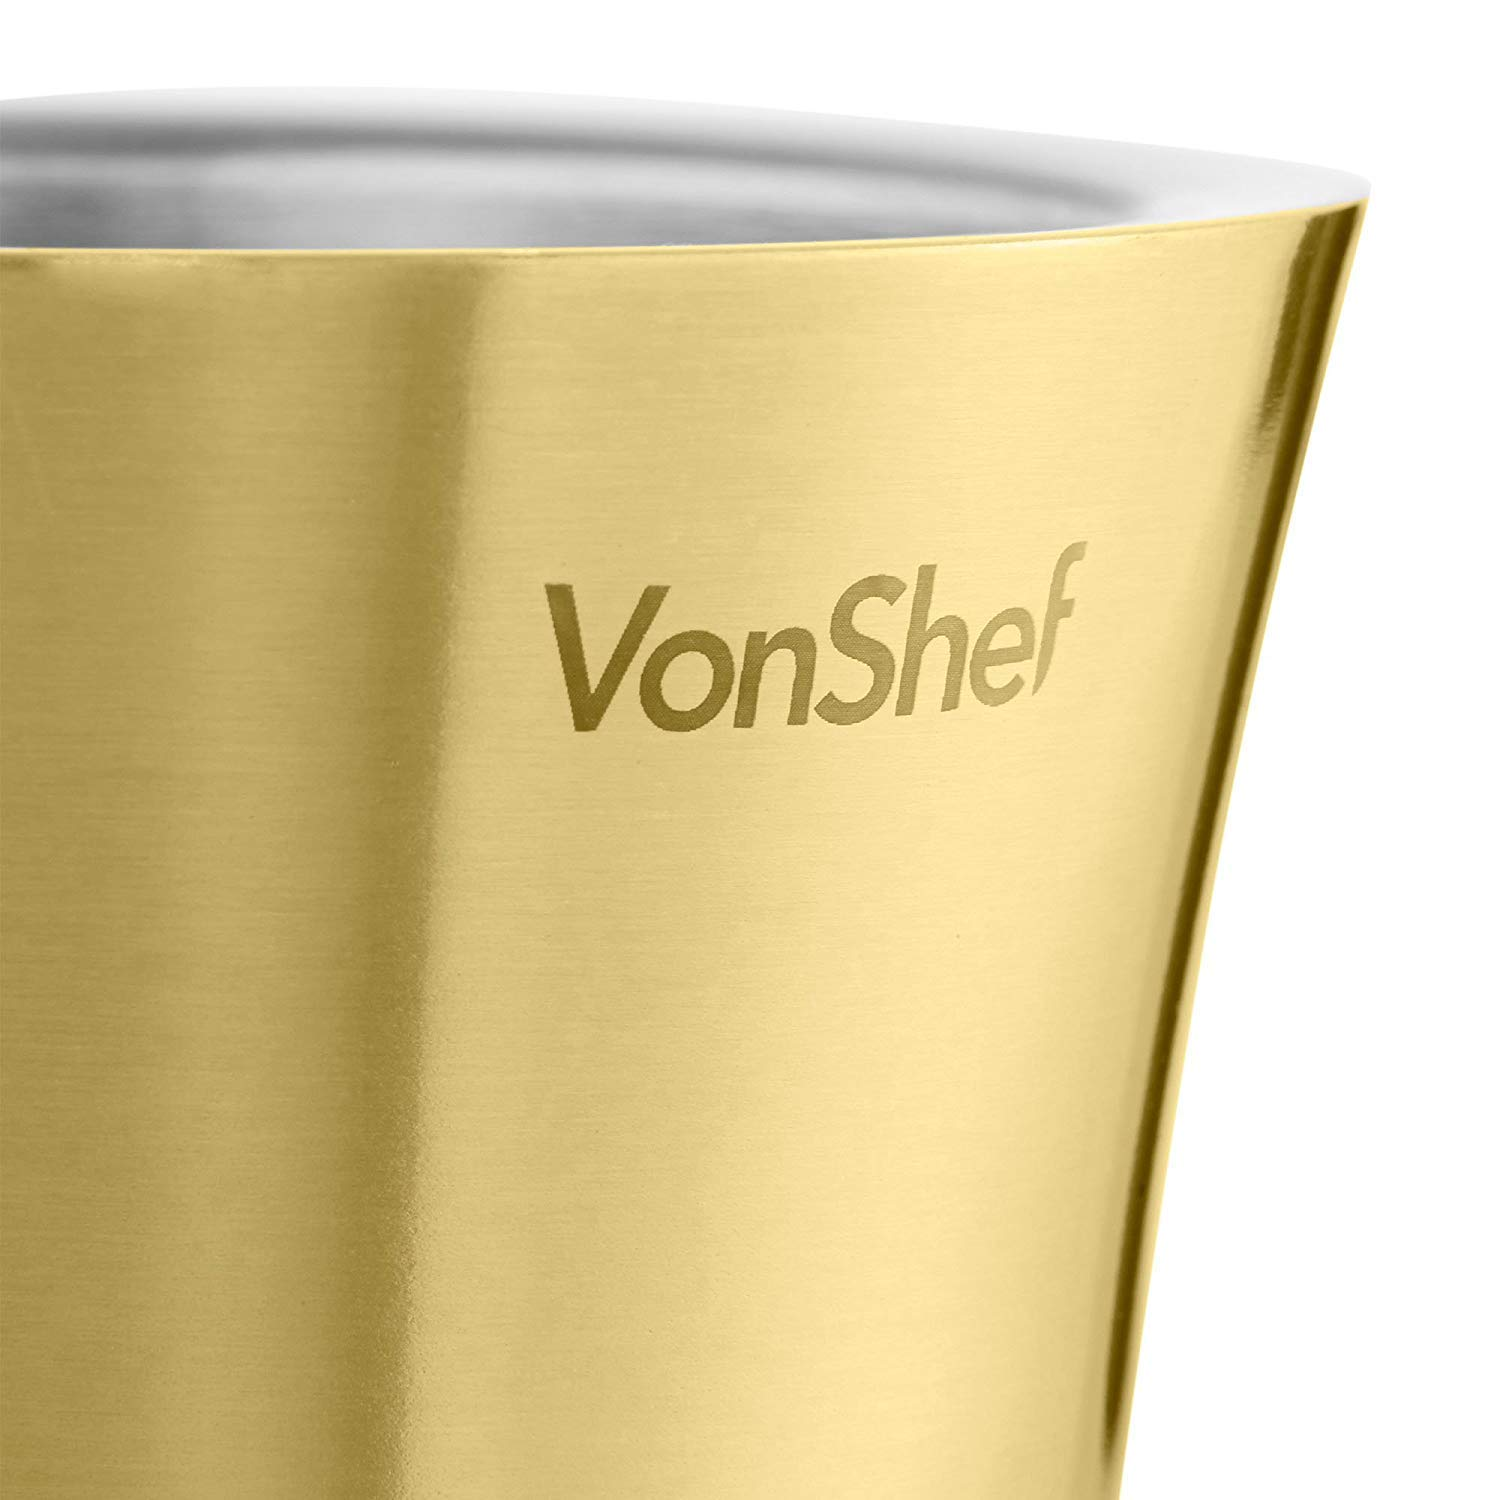 Stainless Steel Double-Wall Insulated VonShef Wine Cooler Bottle Holder